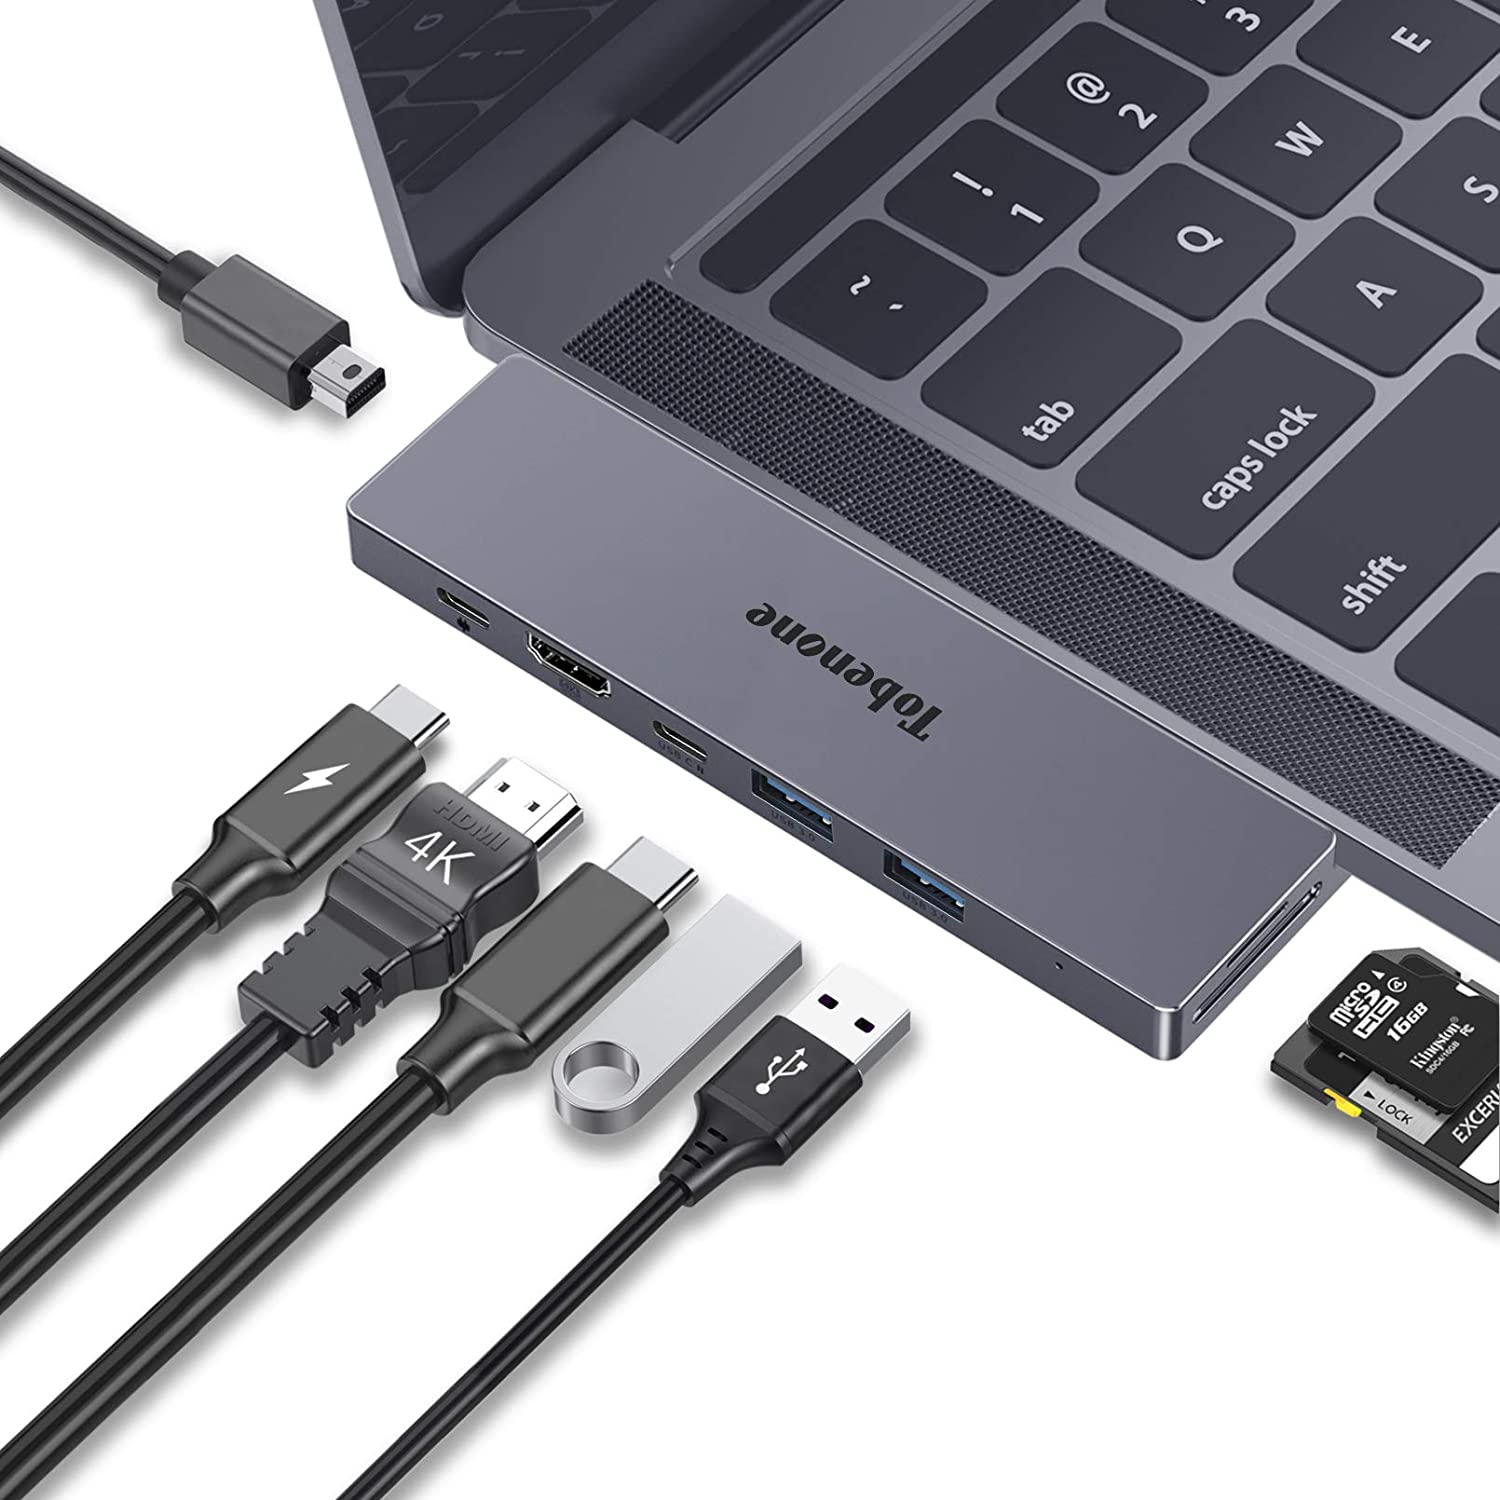 USB C Dual Monitor Dock for MacBook Pro/Air, 8-in-2 USB C Adapter for Dual Display with 4K MiniDP and HDMI, USB 3.0, PD Charging, USB-C and MicroSD/SD 4.0 Card Slot